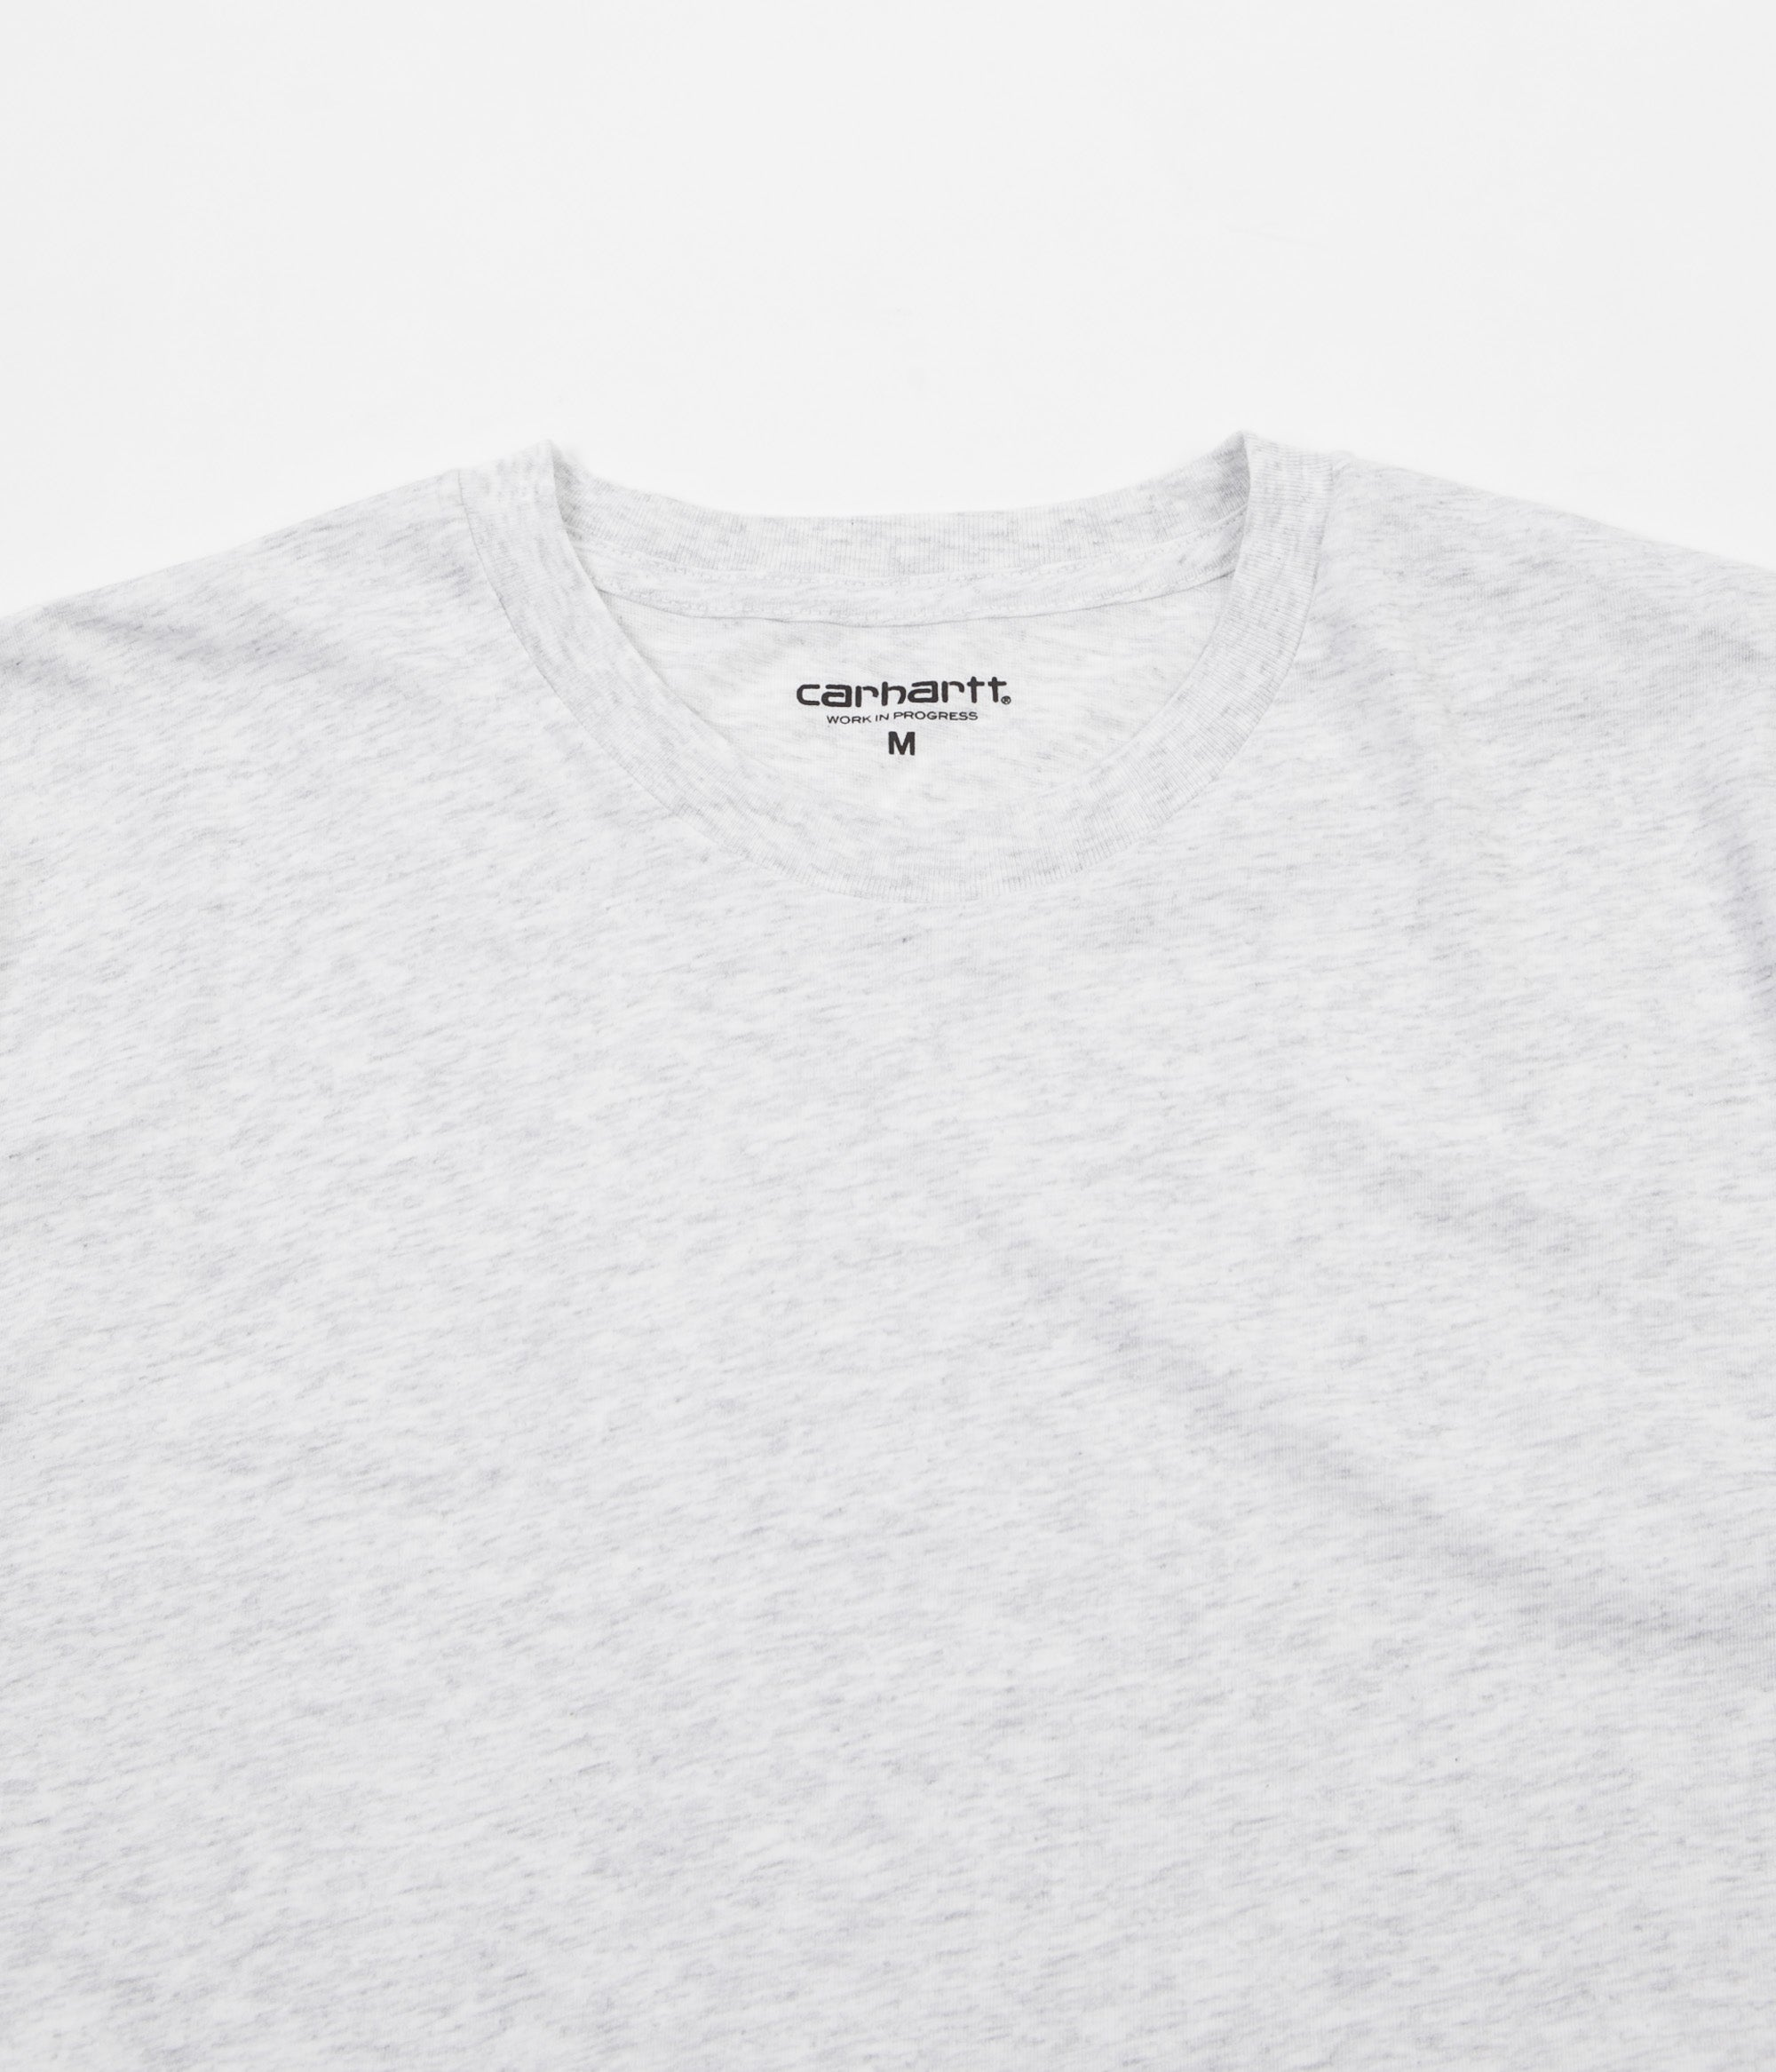 Carhartt Holbrook LT T-Shirt - Ash Heather